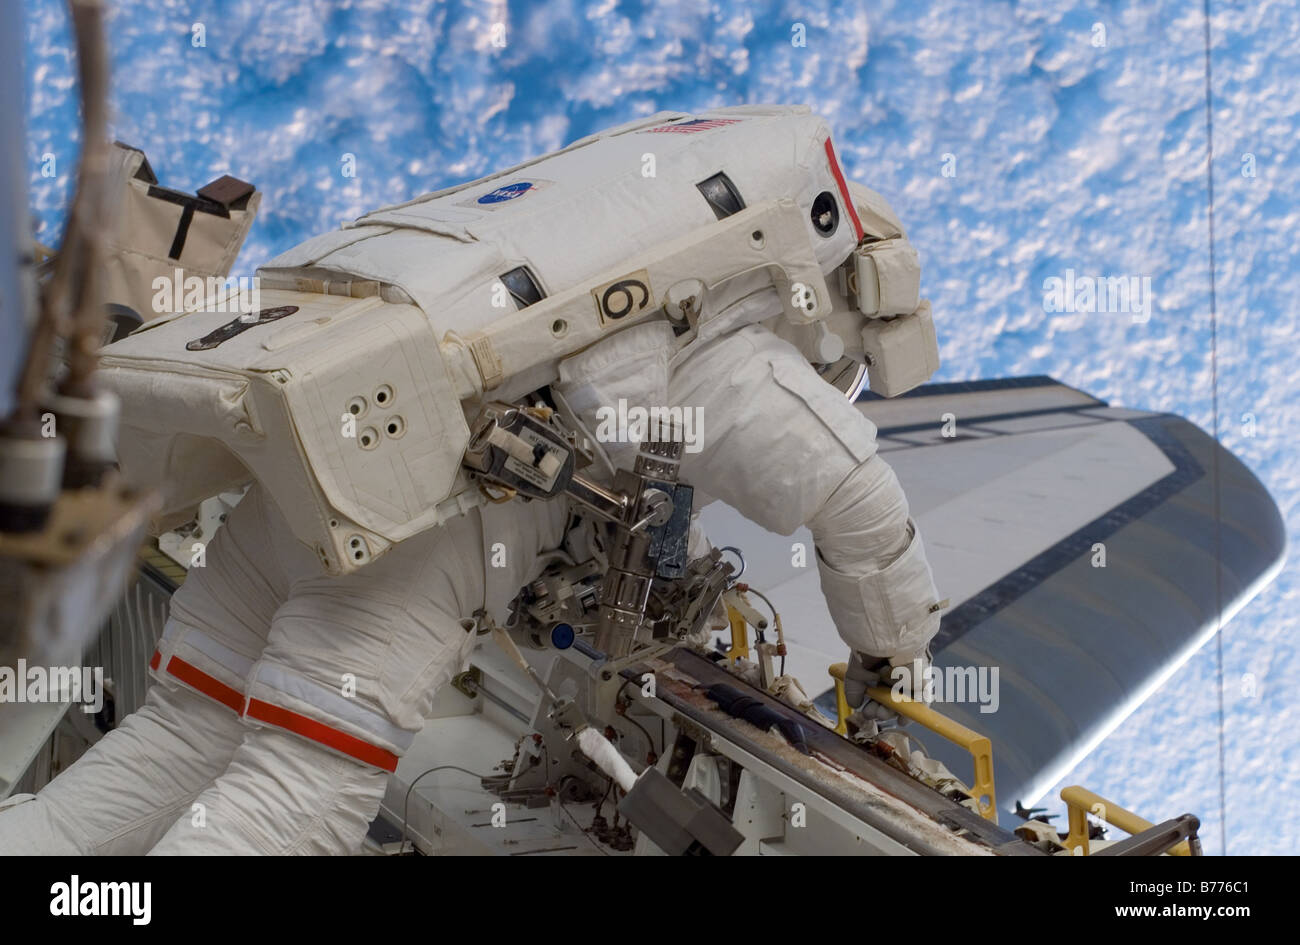 Astronaut Red Walheim in space - Stock Image